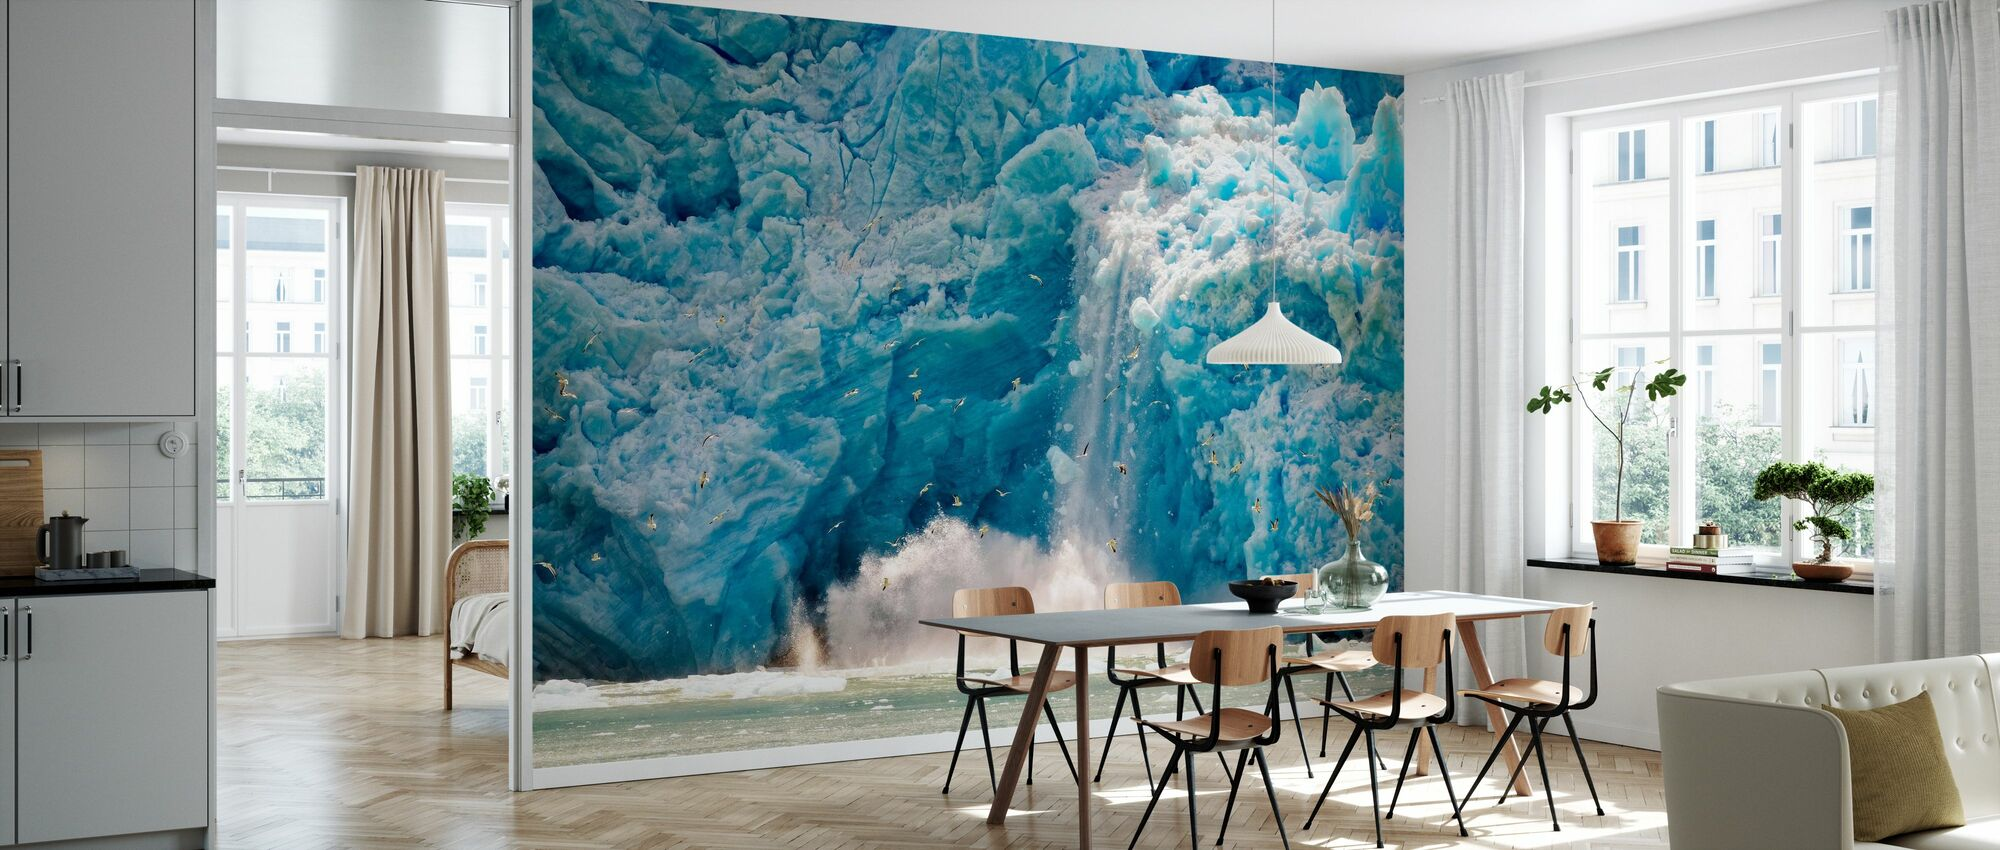 We are Melting - Wallpaper - Kitchen